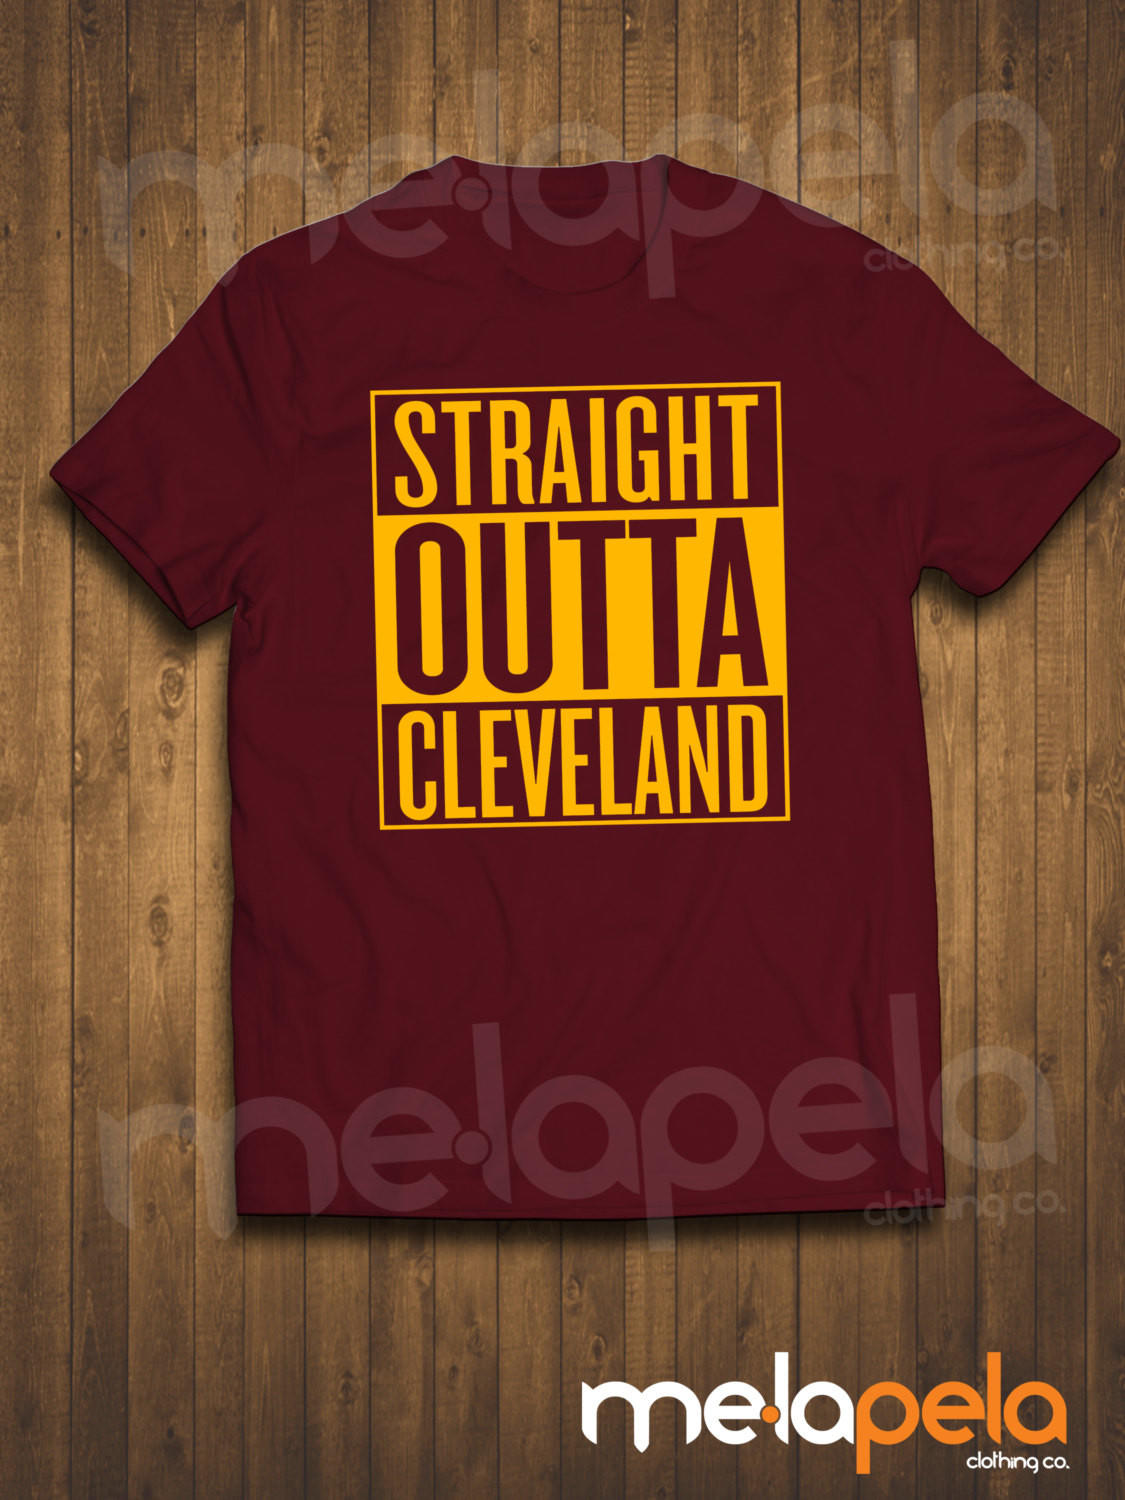 075d250d1 Straight Outta Cleveland   Akron T-Shirts (Cavaliers Colors) Adult Sizes